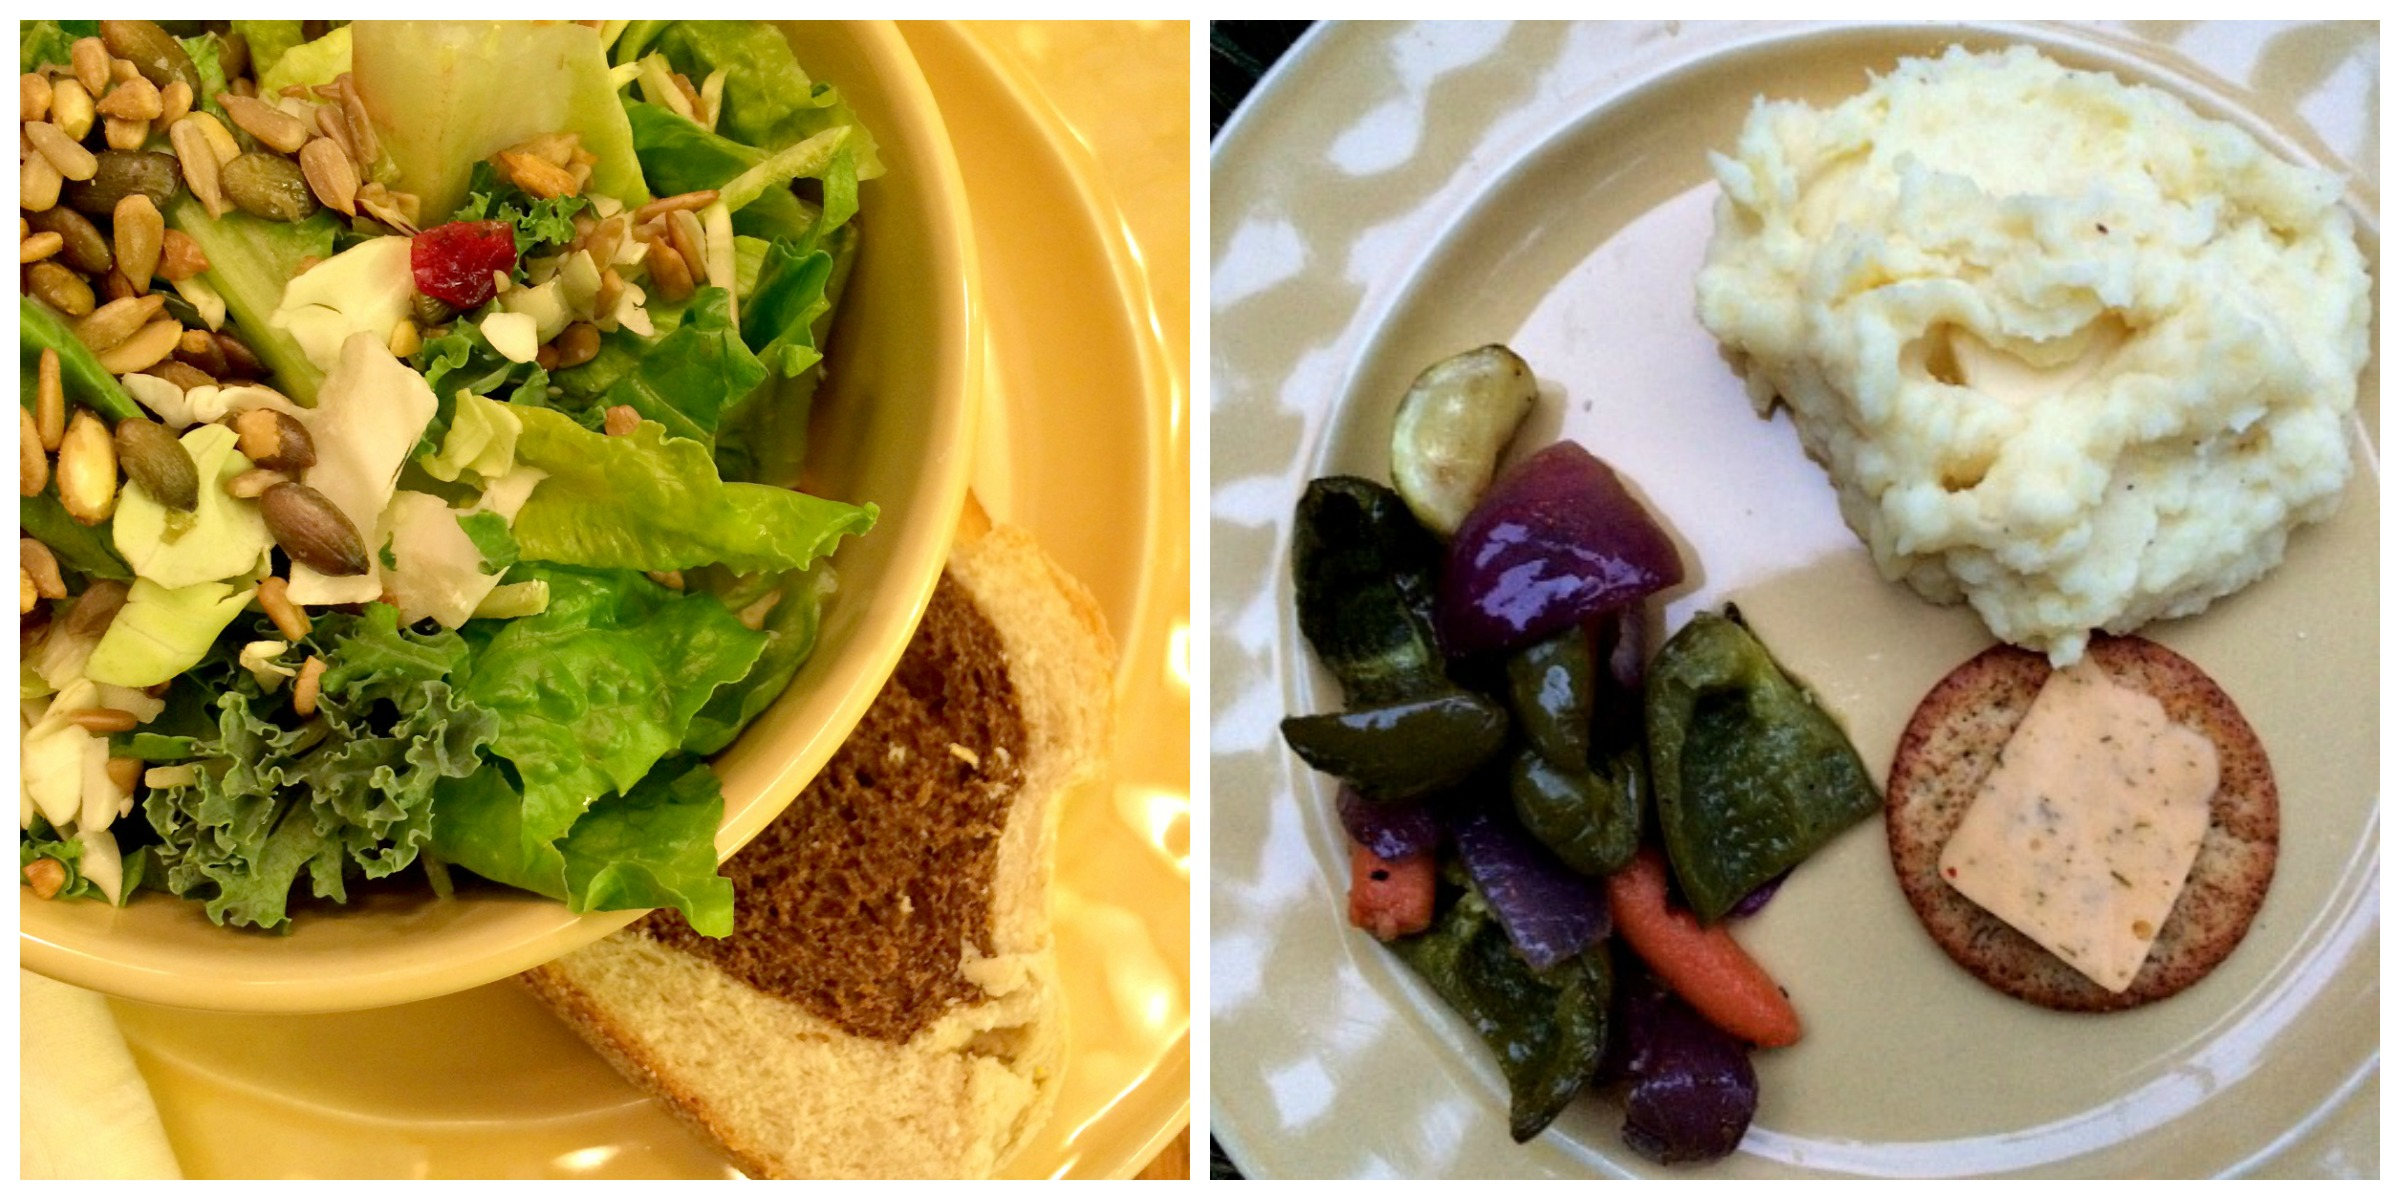 Saturday Dinner Collage Salad, Roasted Veggies and Mashed Potatoes